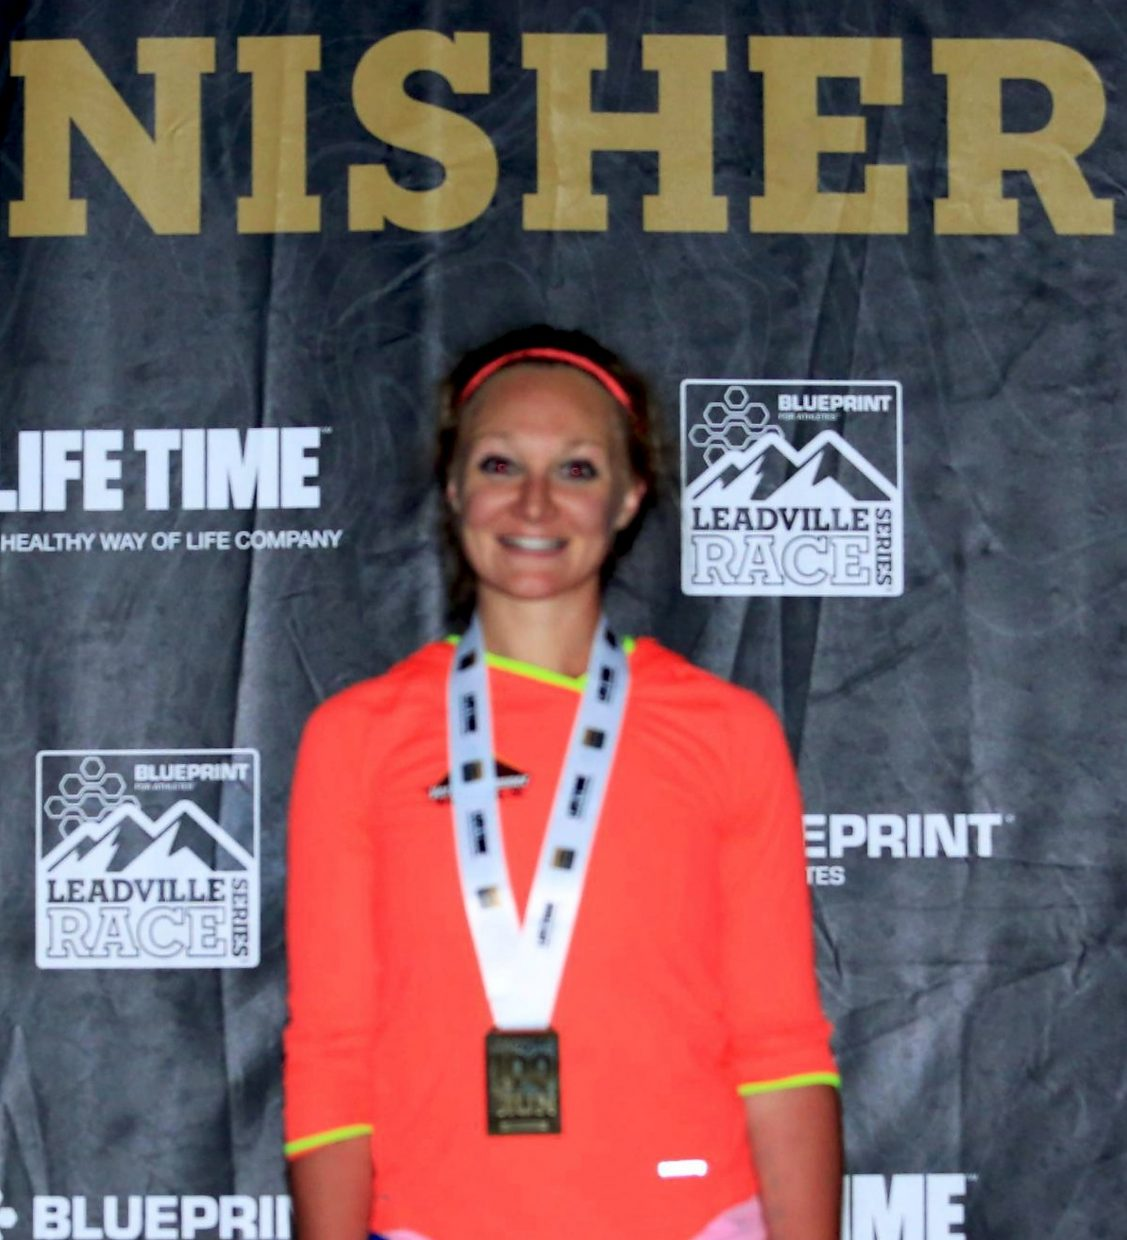 Breck ultra-runner Sabrina Stanley after crossing the finish line at the Leadville 100 Trail Run on Aug. 20. Stanley finished in just under 22 hours and 30 minutes — nearly 2 hours and 30 minutes faster than her original goal.